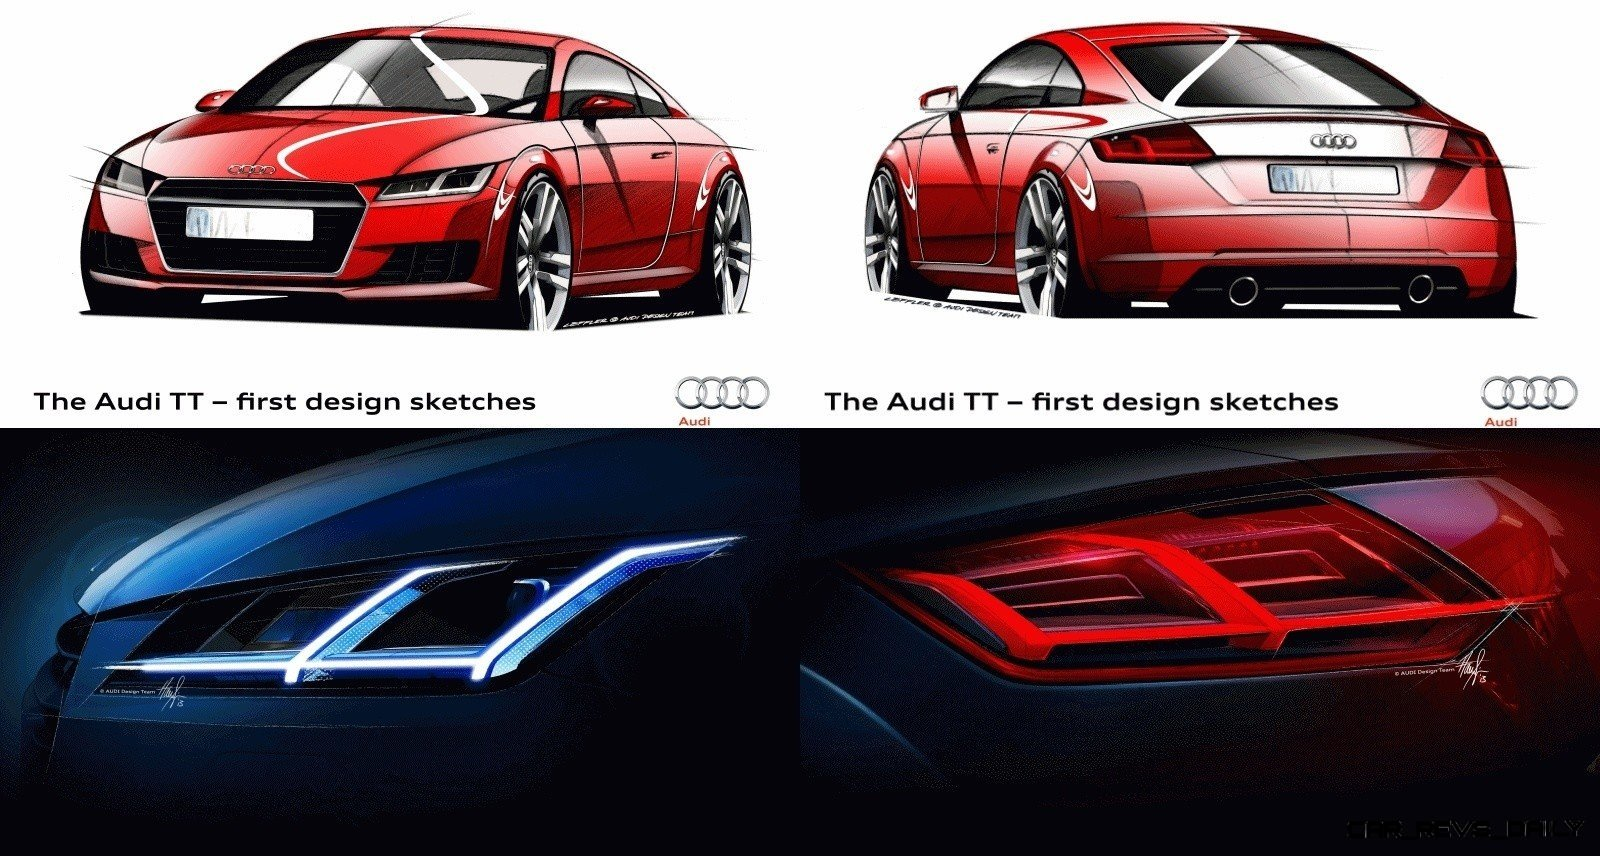 2015 Audi TT Sketches tile